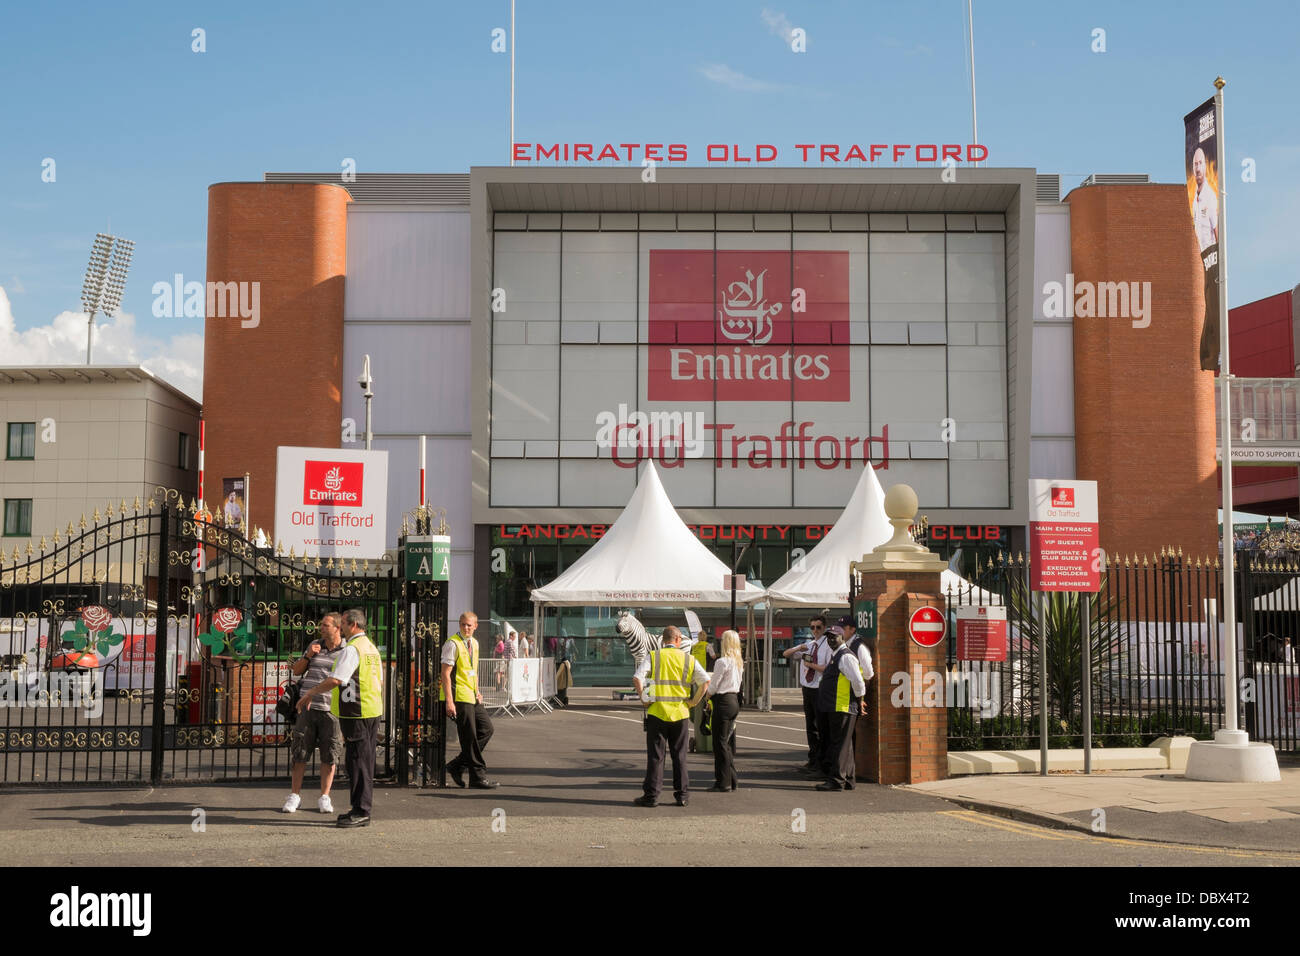 Scene outside Members main entrance to Old Trafford at Lancashire County Cricket Ground during Ashes Test Match - Stock Image